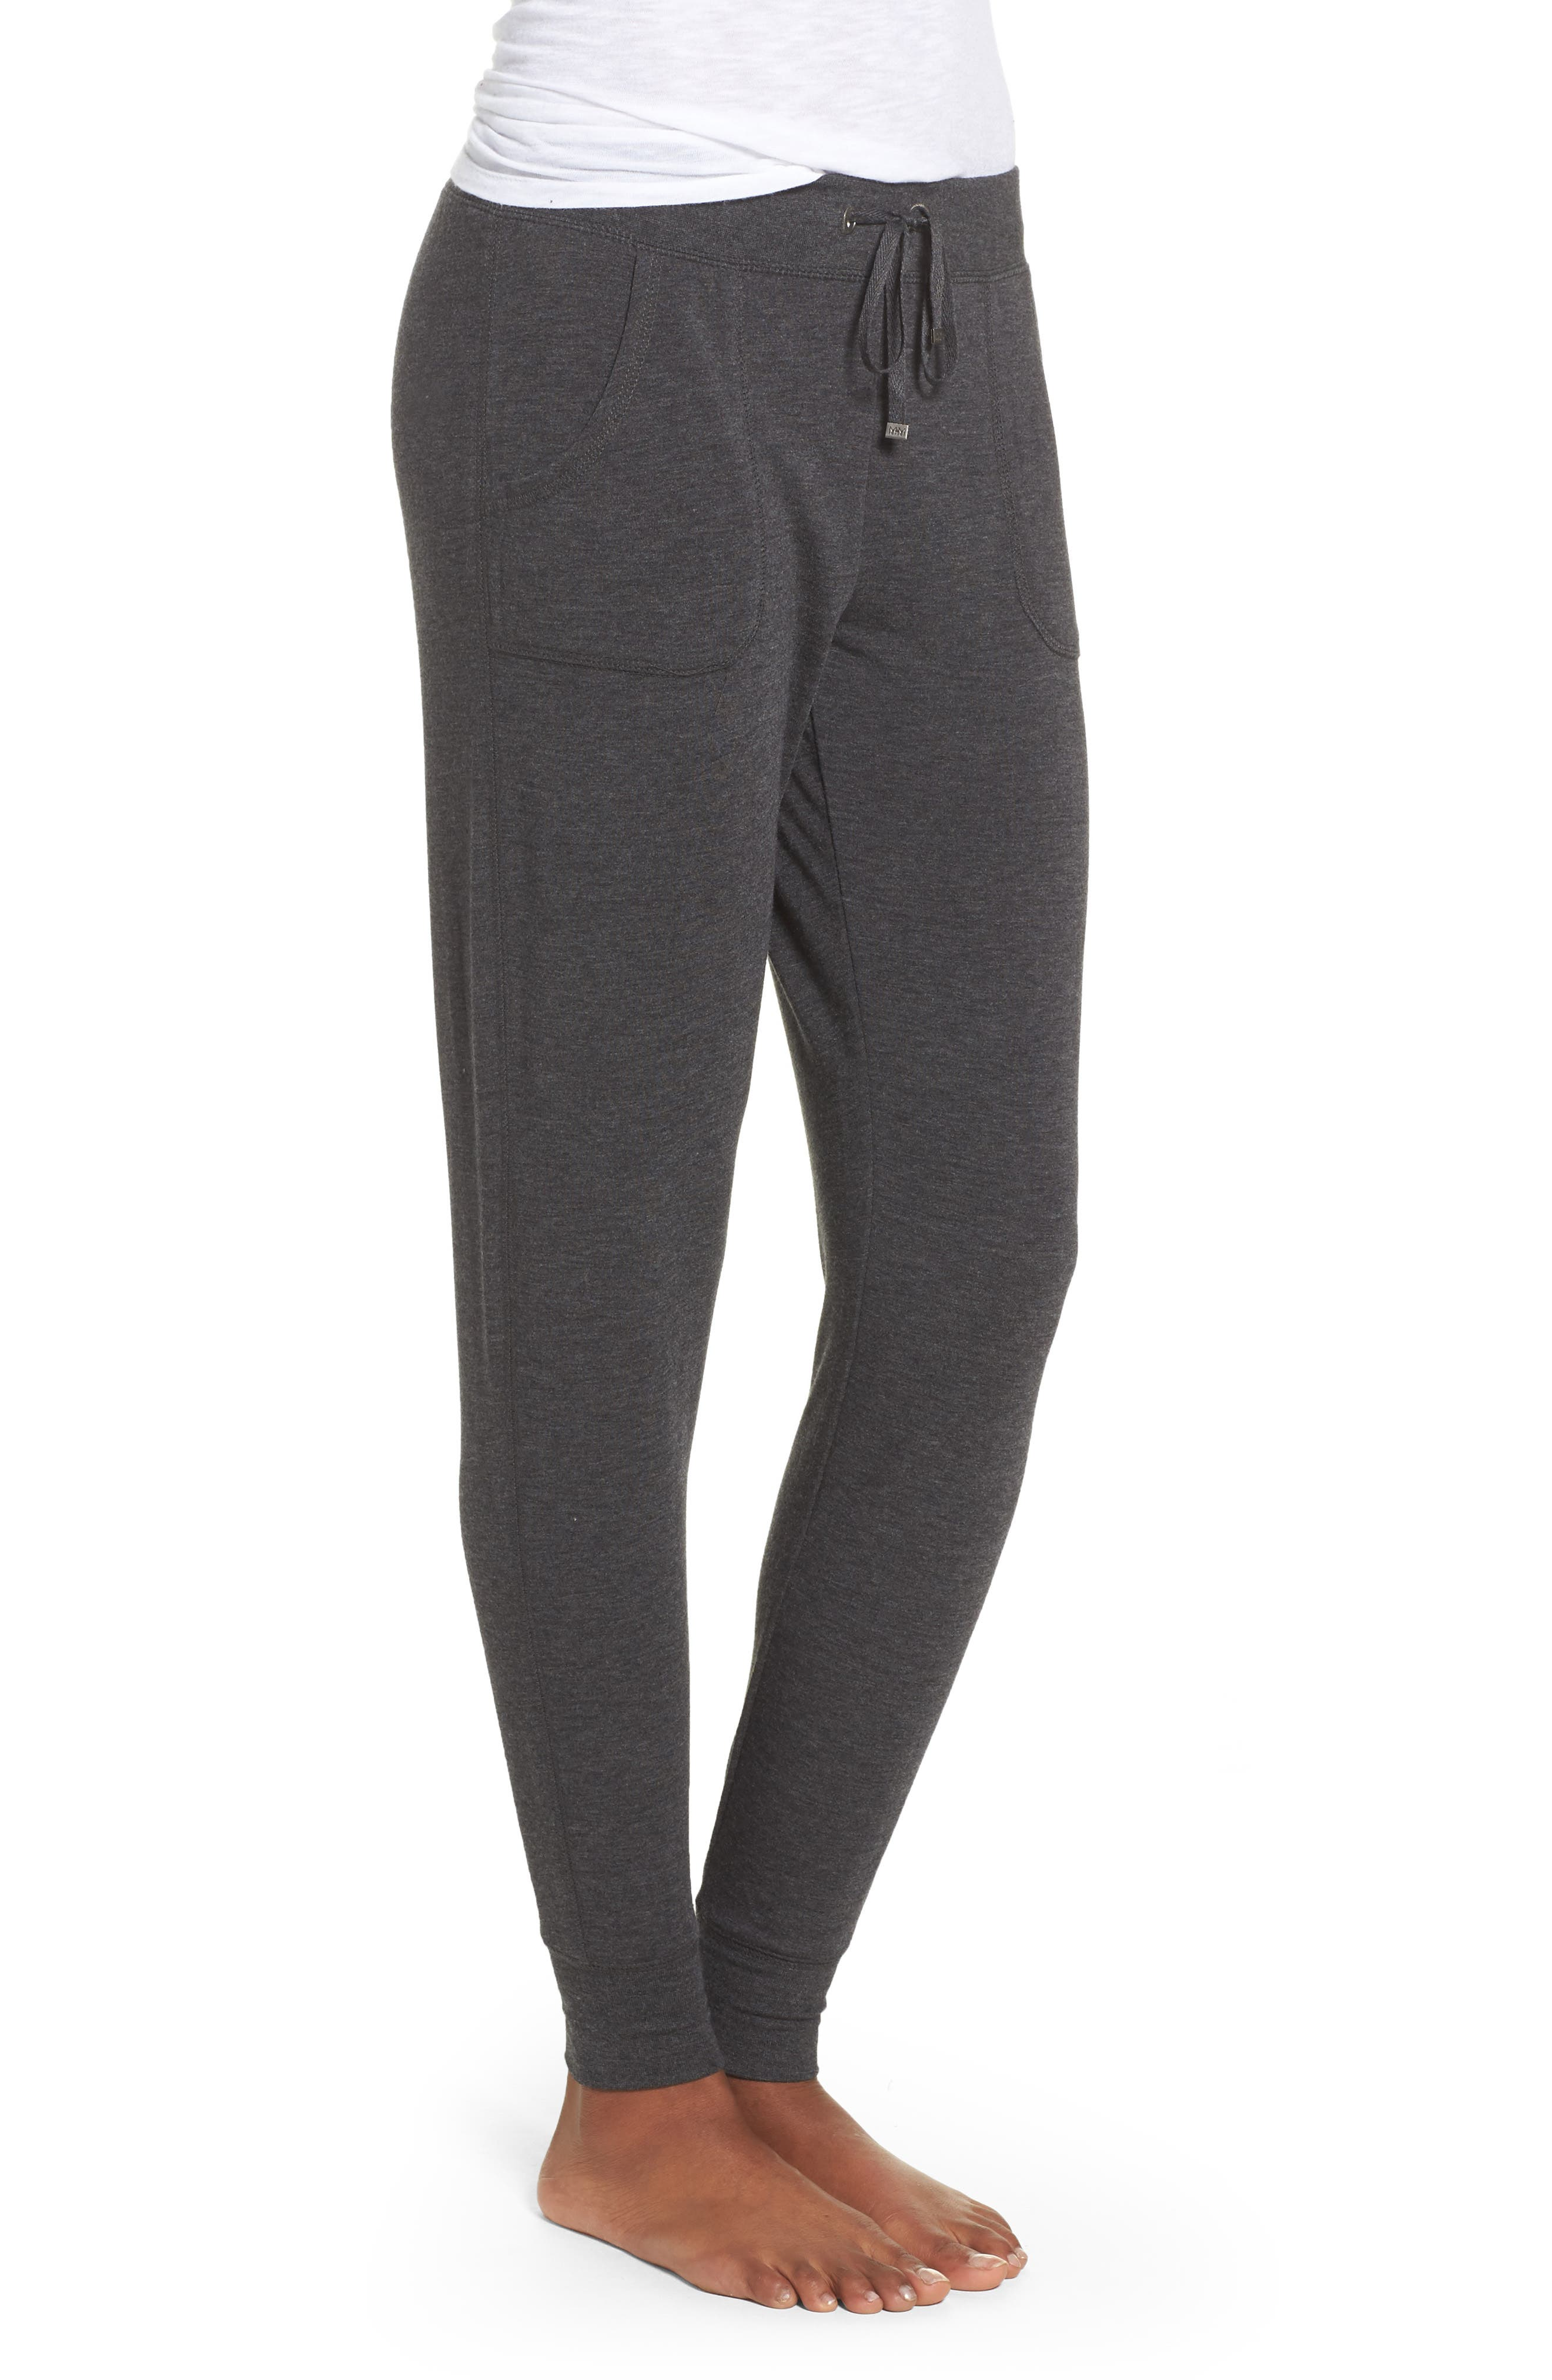 All About It Lounge Pants,                             Alternate thumbnail 4, color,                             Grey Wolf Heather